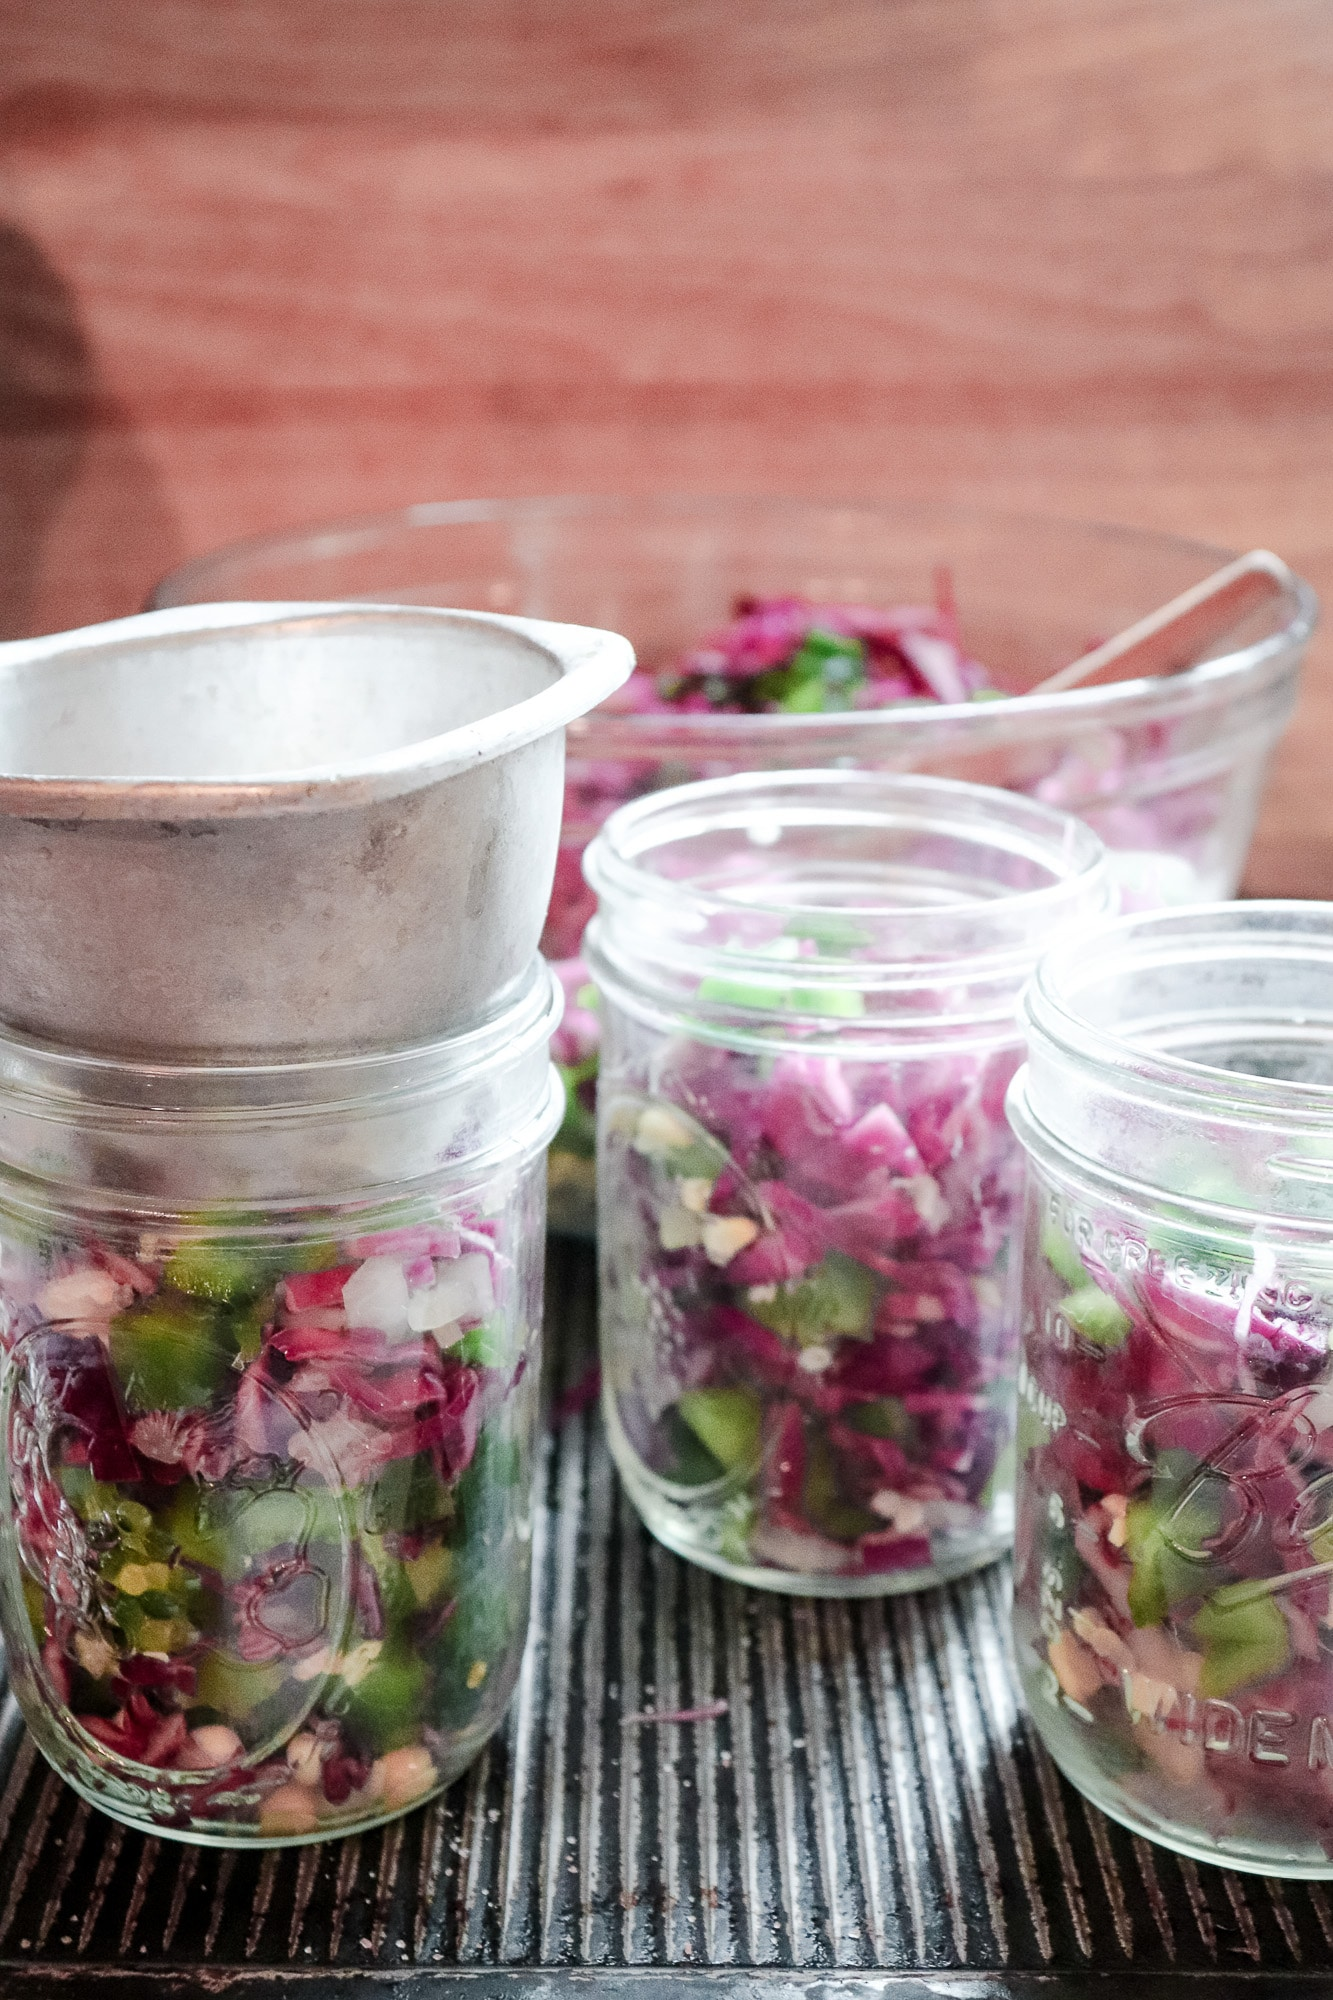 adding chopped vegetables to jars